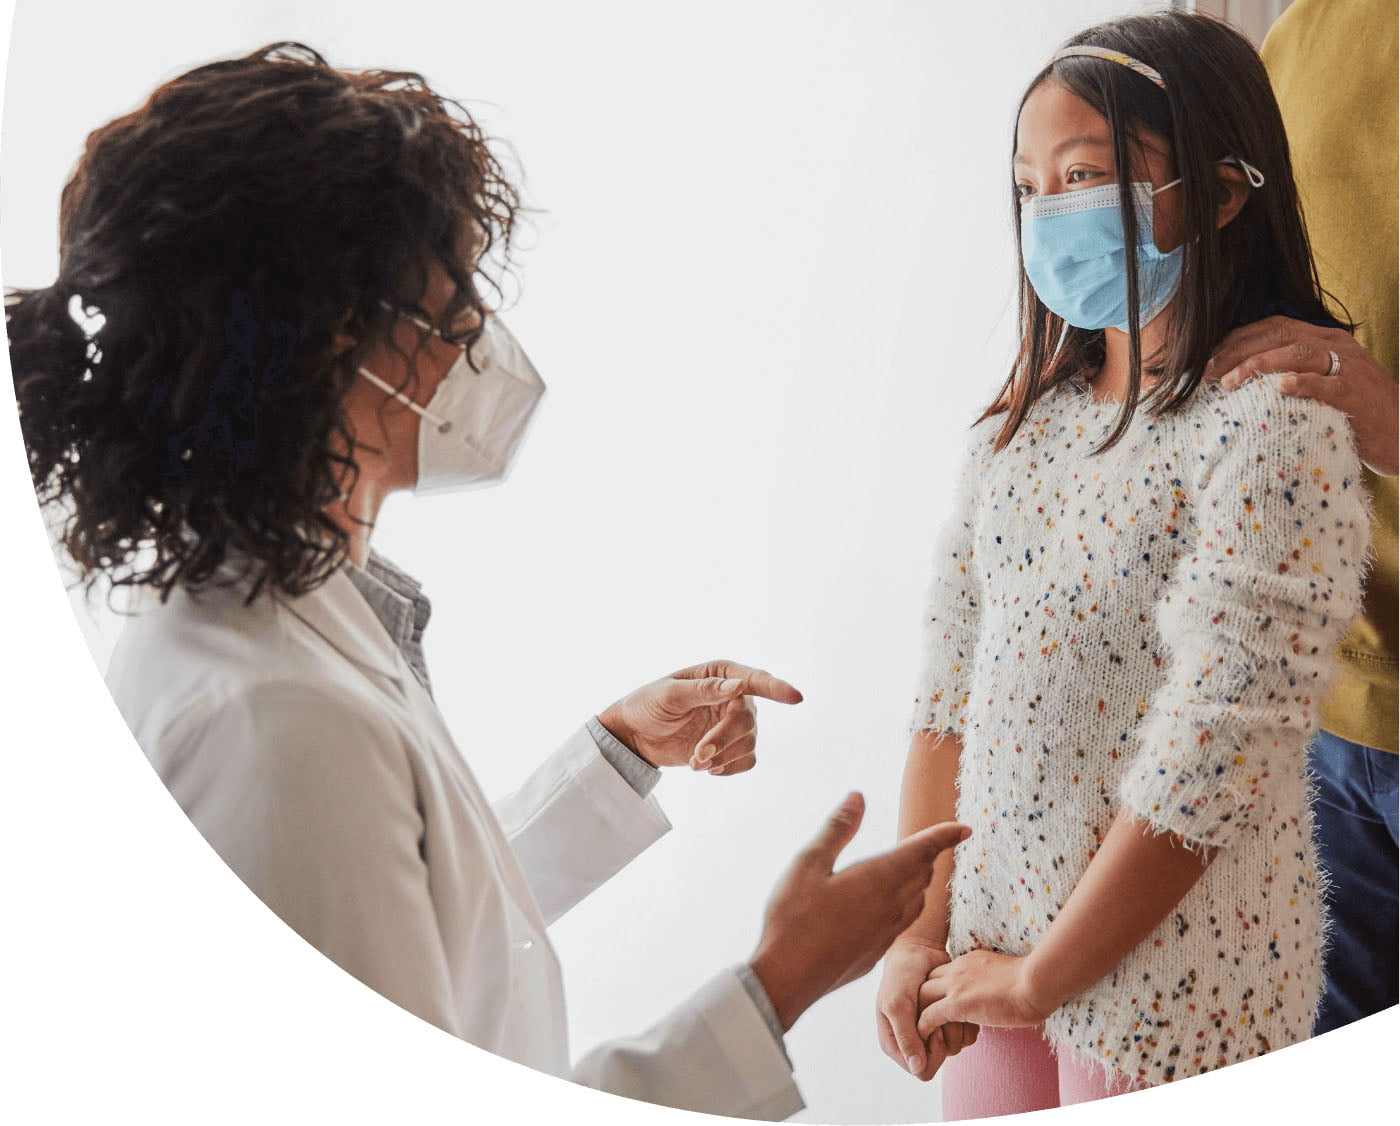 Doctor in mask talking to child